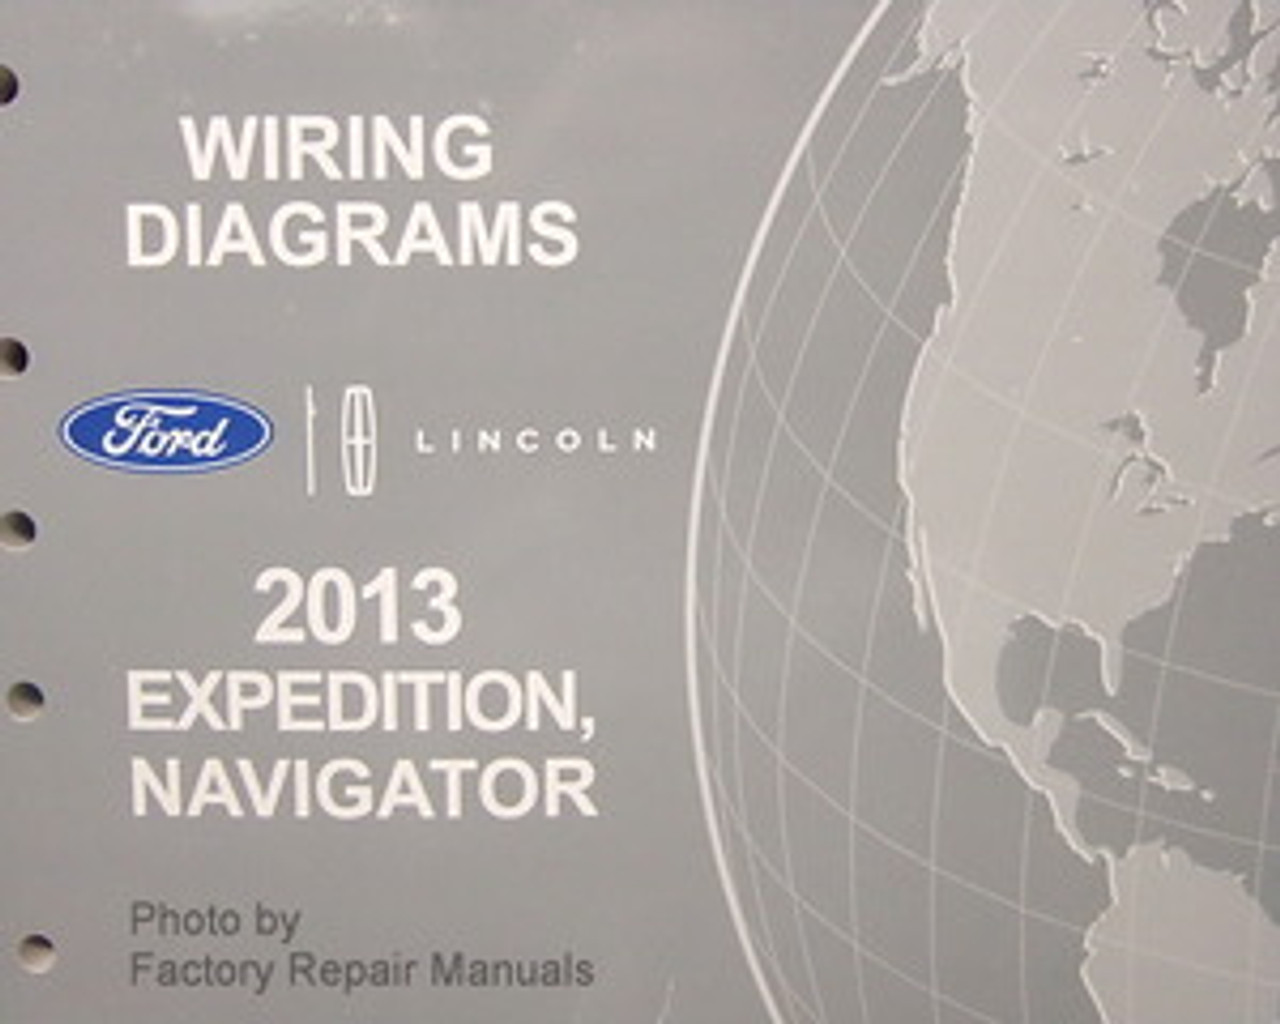 2013 Ford Expedition And Lincoln Navigator Electrical